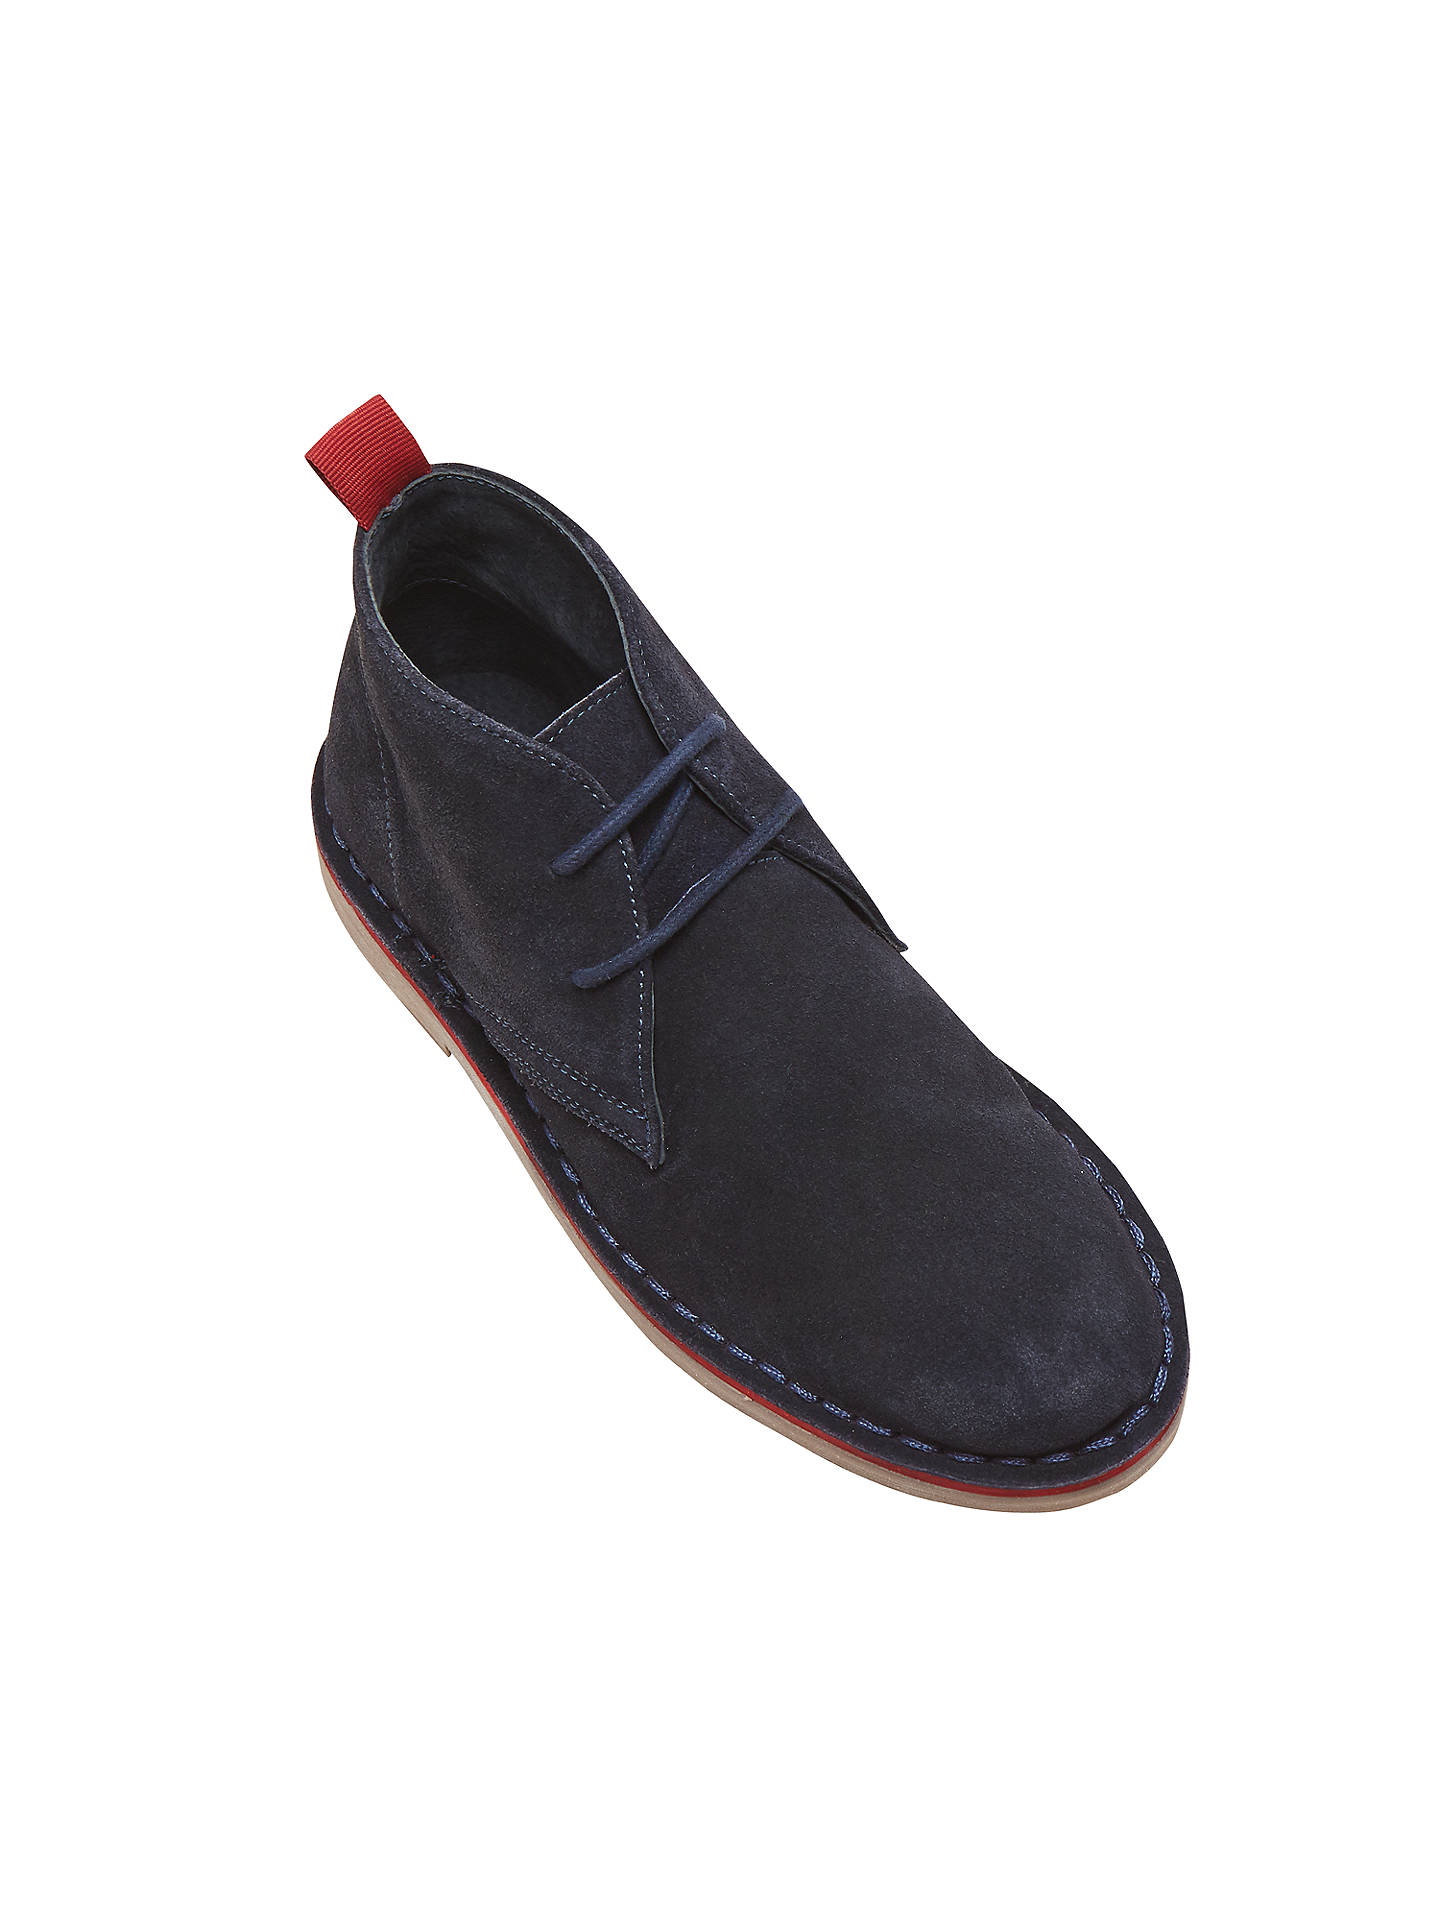 BuyJohn Lewis & Partners Children's Desert Lace Up Boots, Navy, 8 Jnr Online at johnlewis.com